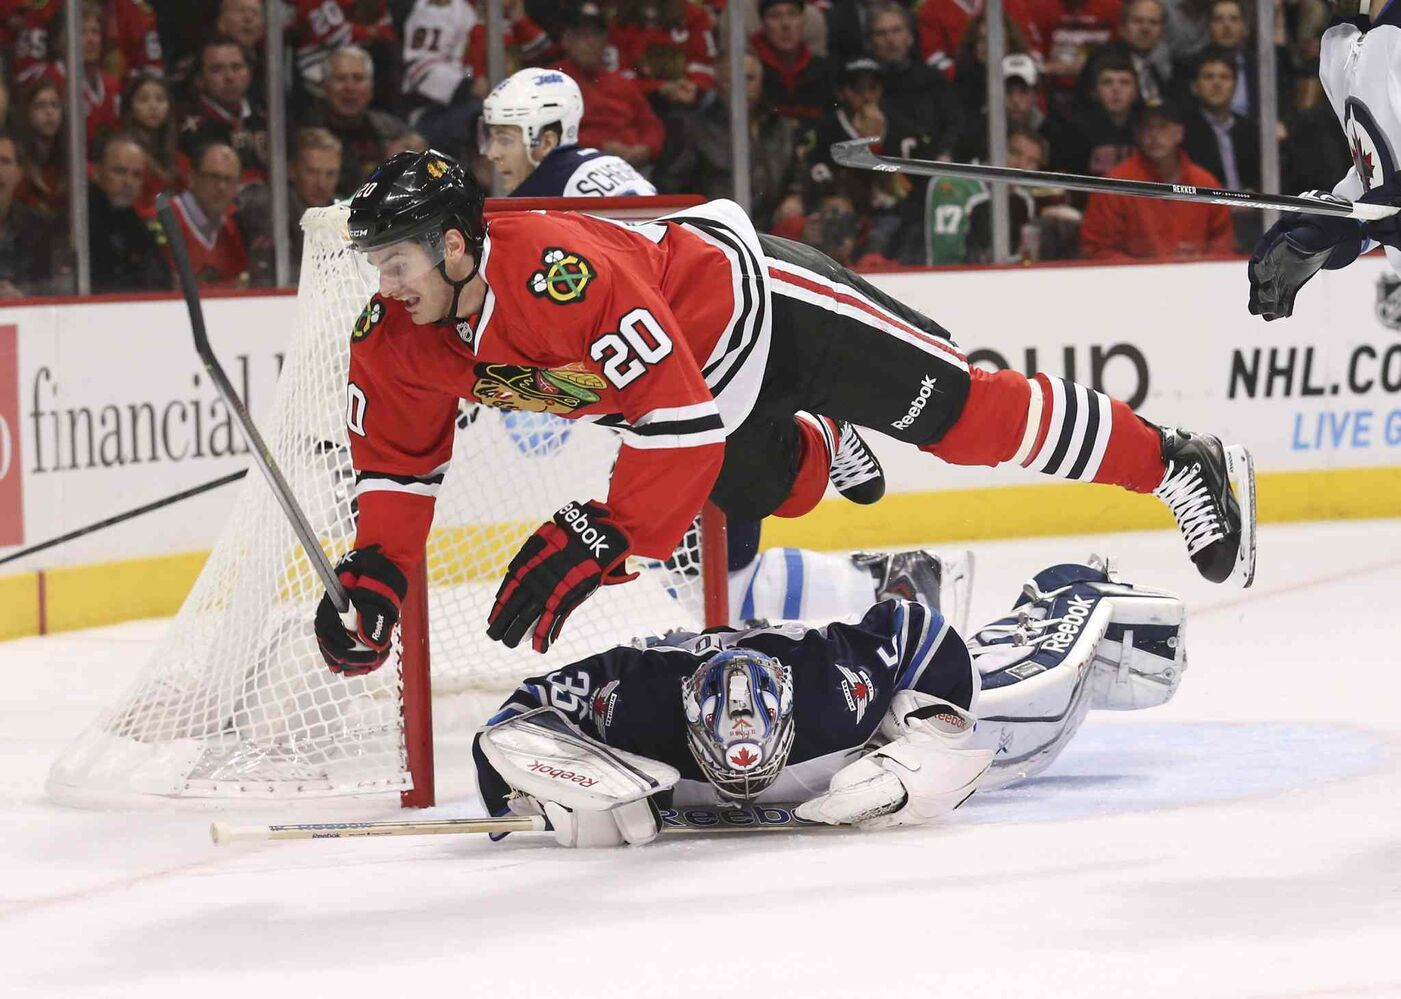 Brandon Saad (20) of the Chicago Blackhawks dives over goalie Al Montoya of the Winnipeg Jets while chasing a puck during the first period. (Nuccio DiNuzzo / Chicago Tribune / MCT)